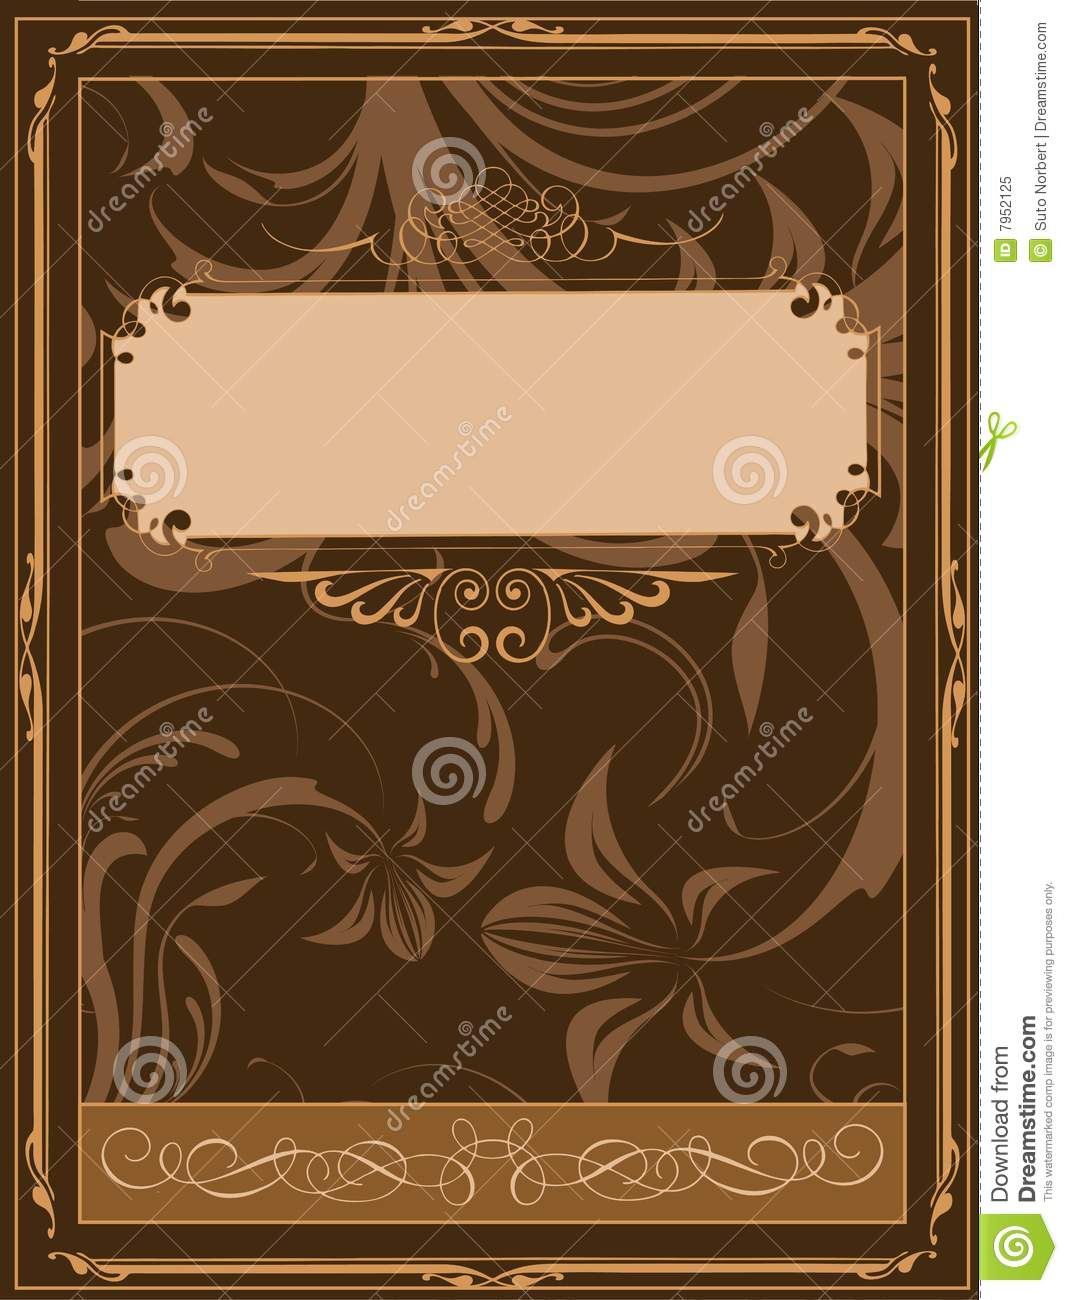 Book Cover Illustration Royalties : Old book cover stock vector illustration of document